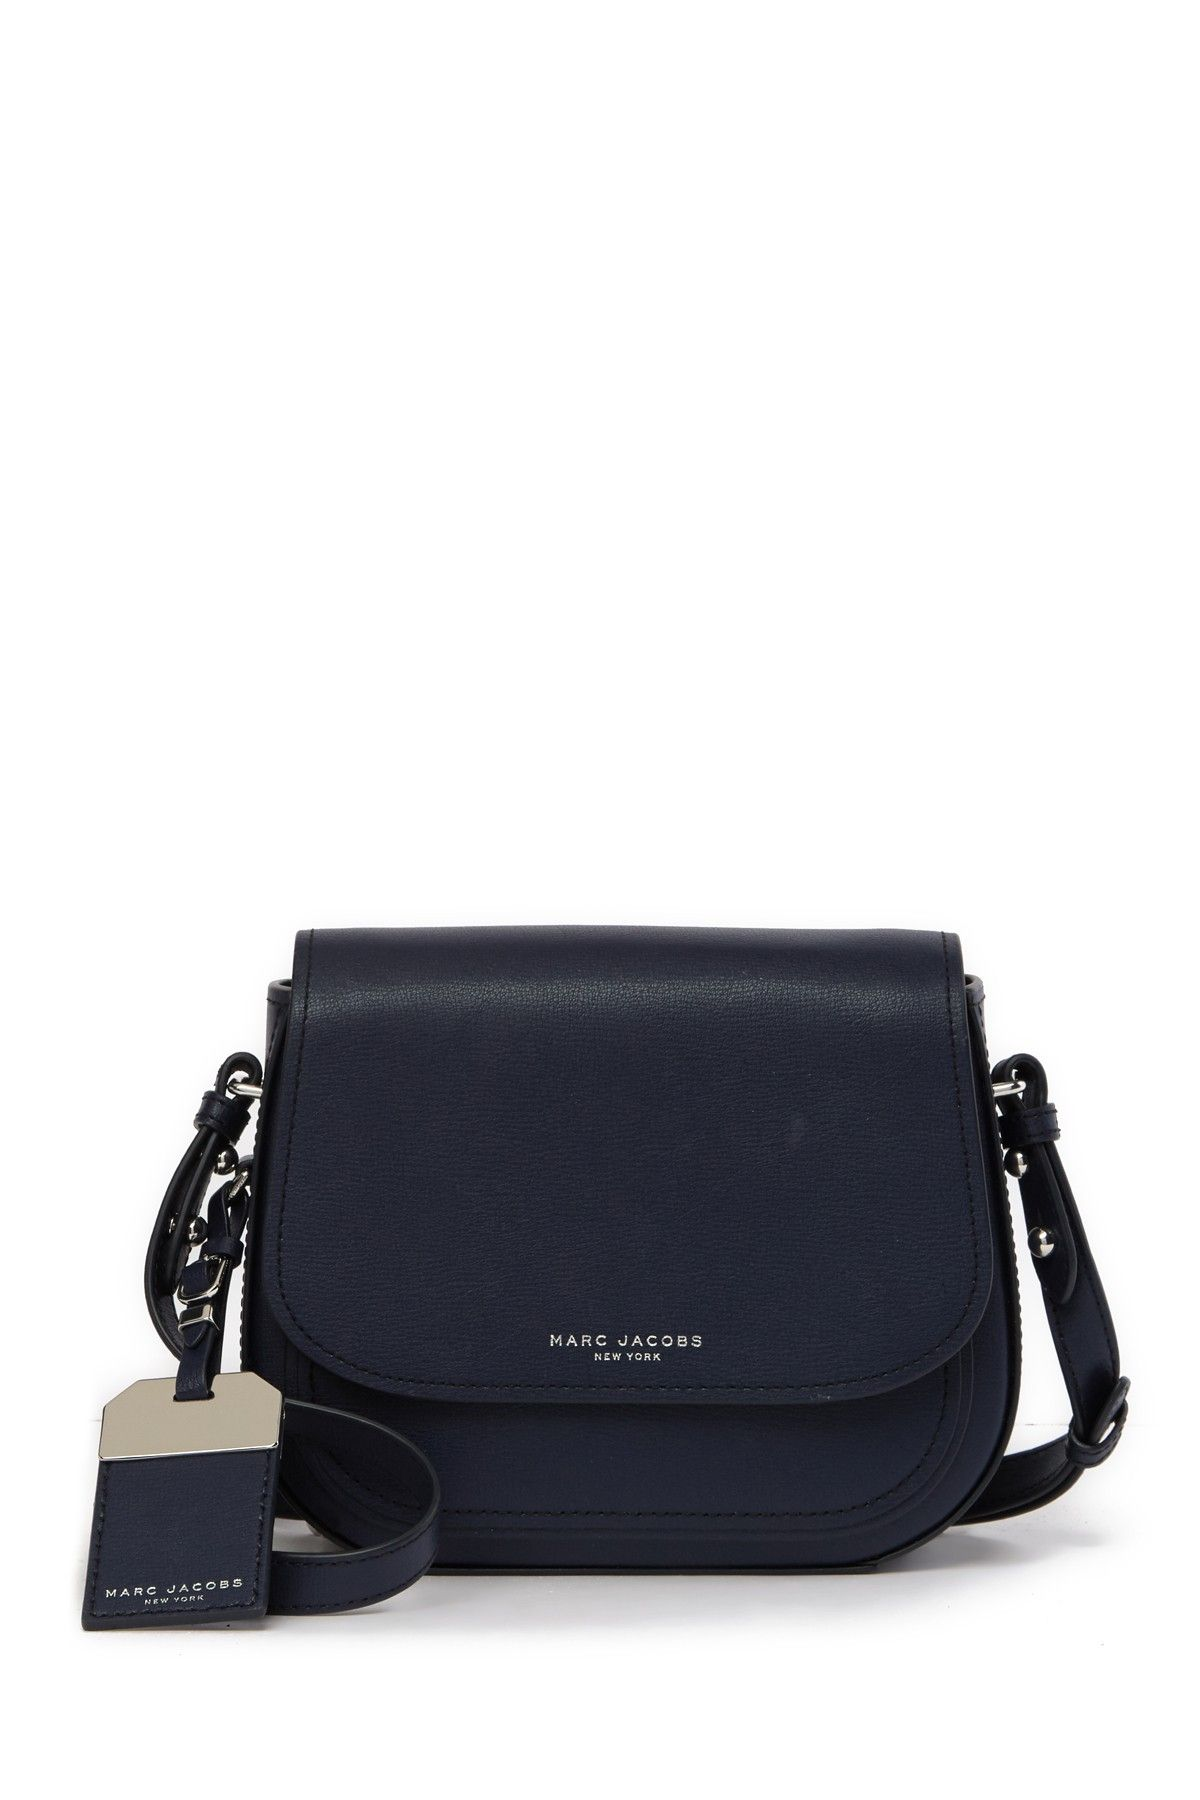 228ca2e188f8 Marc Jacobs | Mini Rider Leather Crossbody Bag in 2019 | Handbags ...